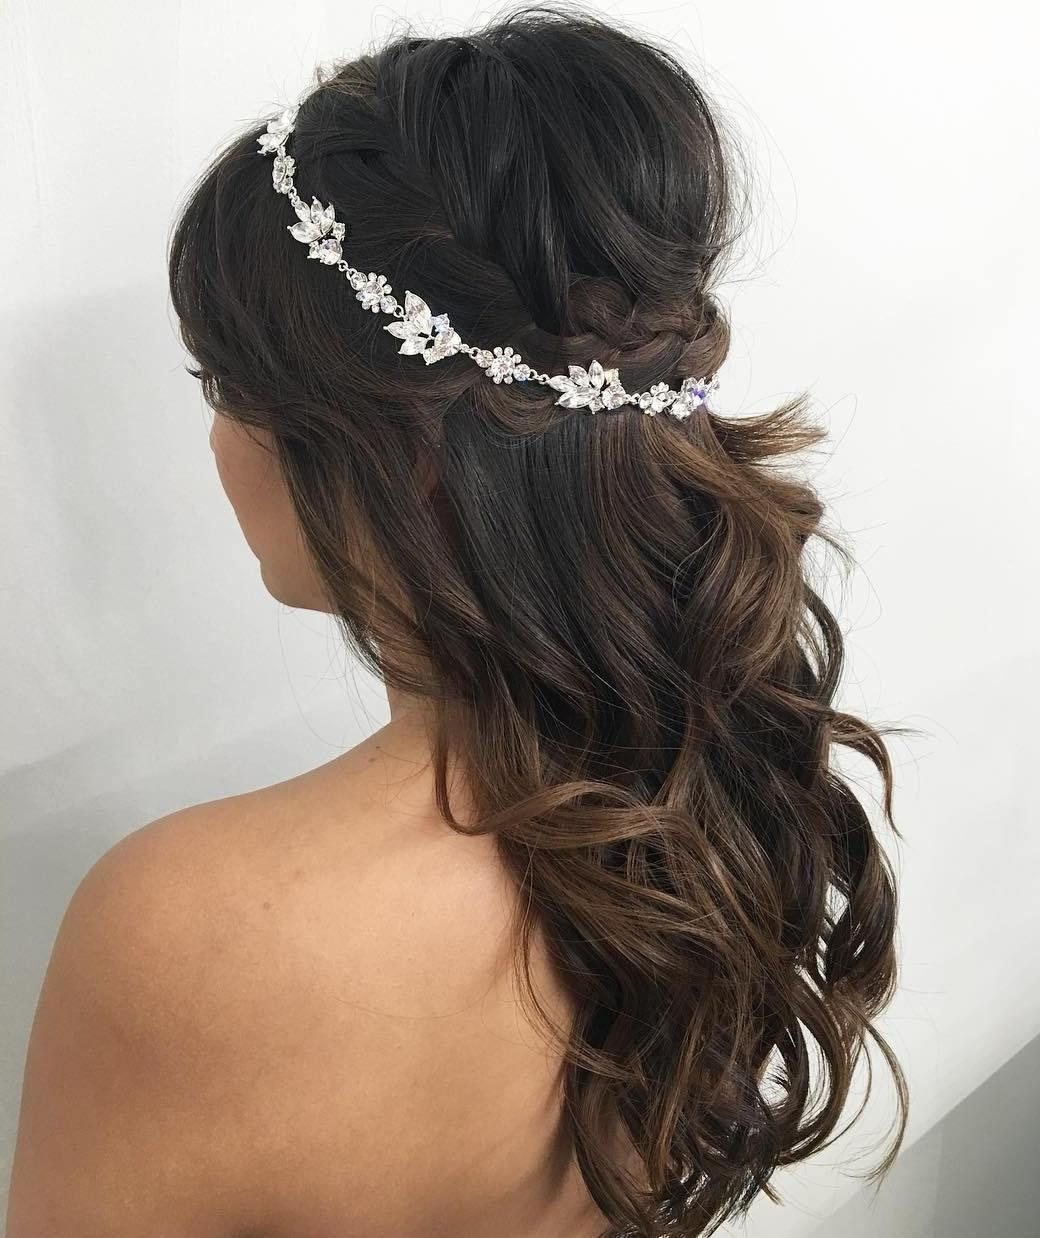 Current Bouffant Half Updo Wedding Hairstyles For Long Hair Regarding Half Up Half Down Wedding Hairstyles – 50 Stylish Ideas For Brides (View 5 of 20)